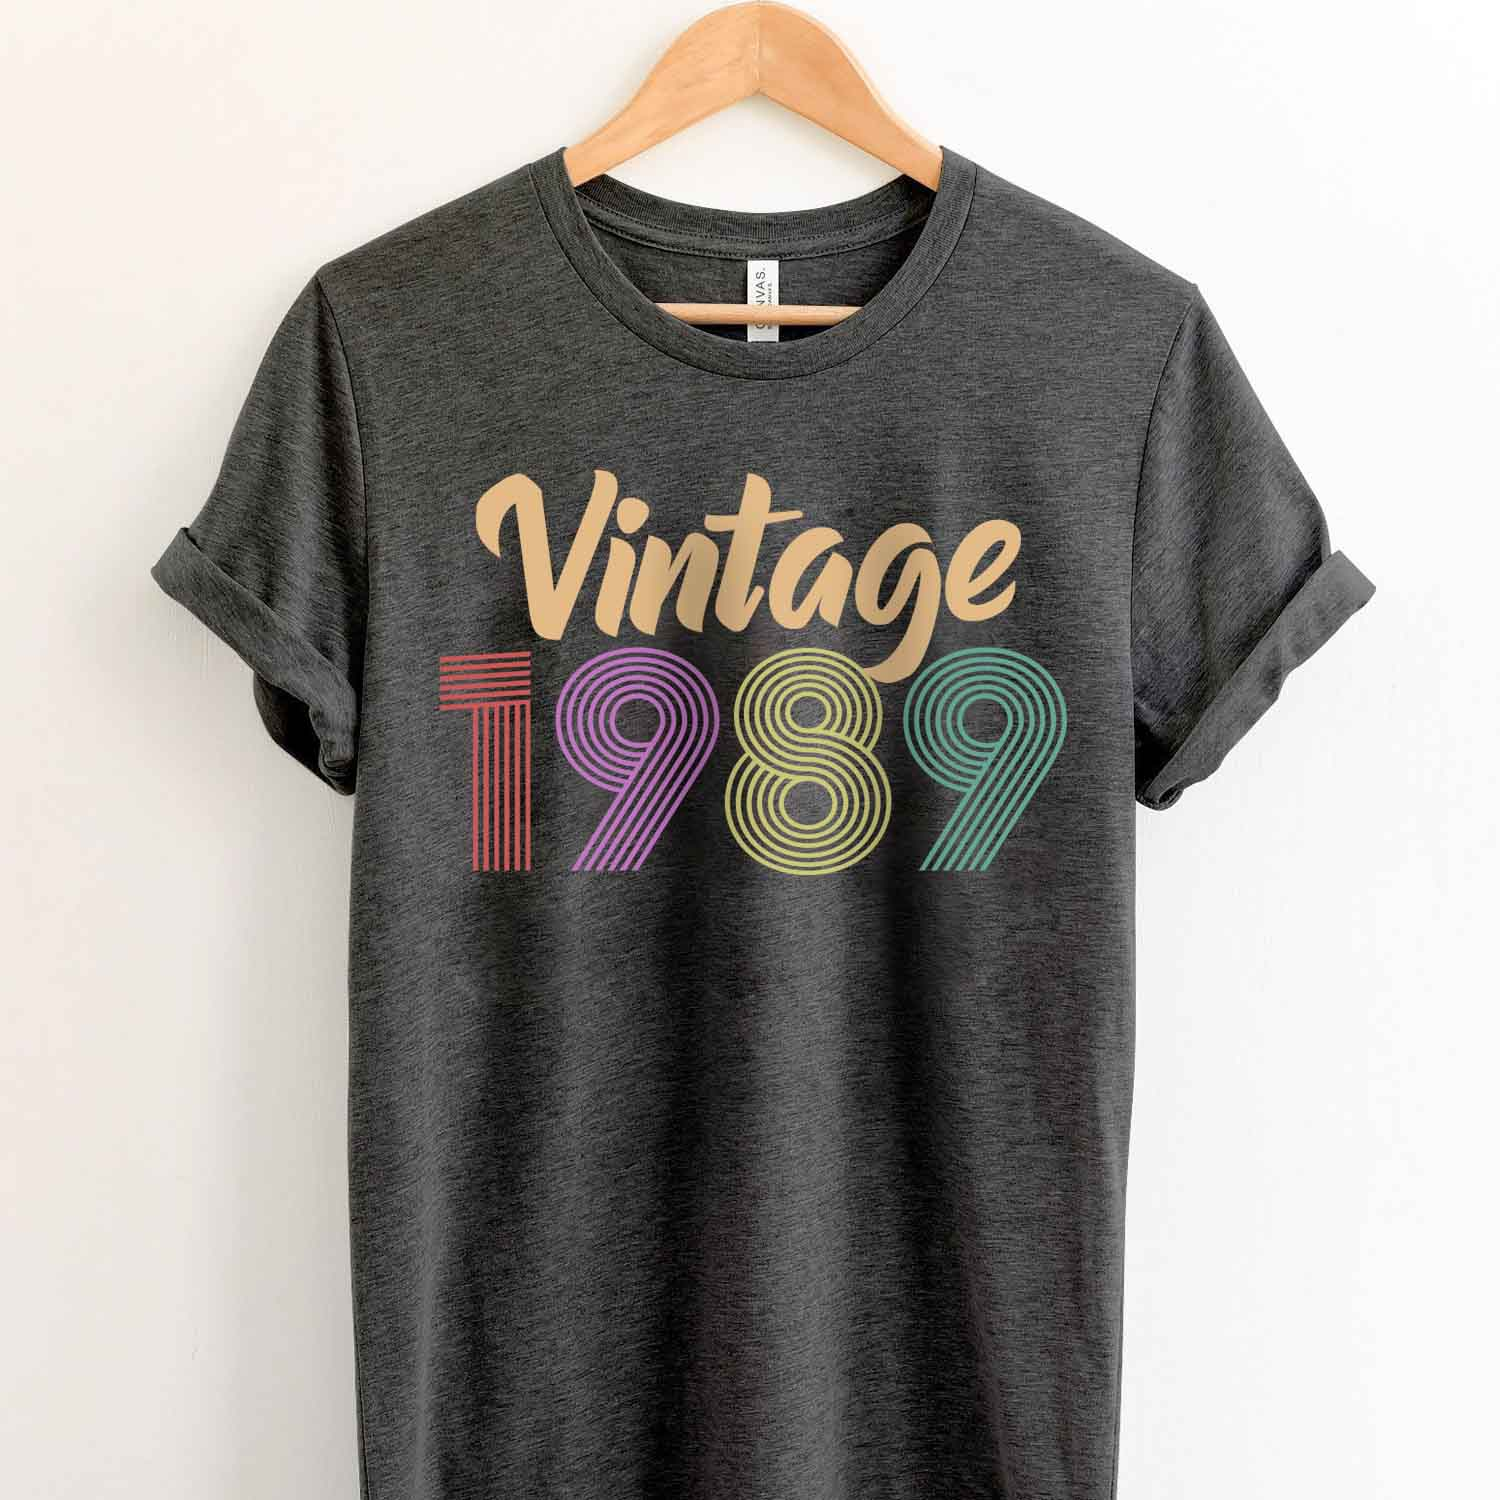 Vintage 1989 30th Birthday Anniversary T Shirt Gift for Family and Friend